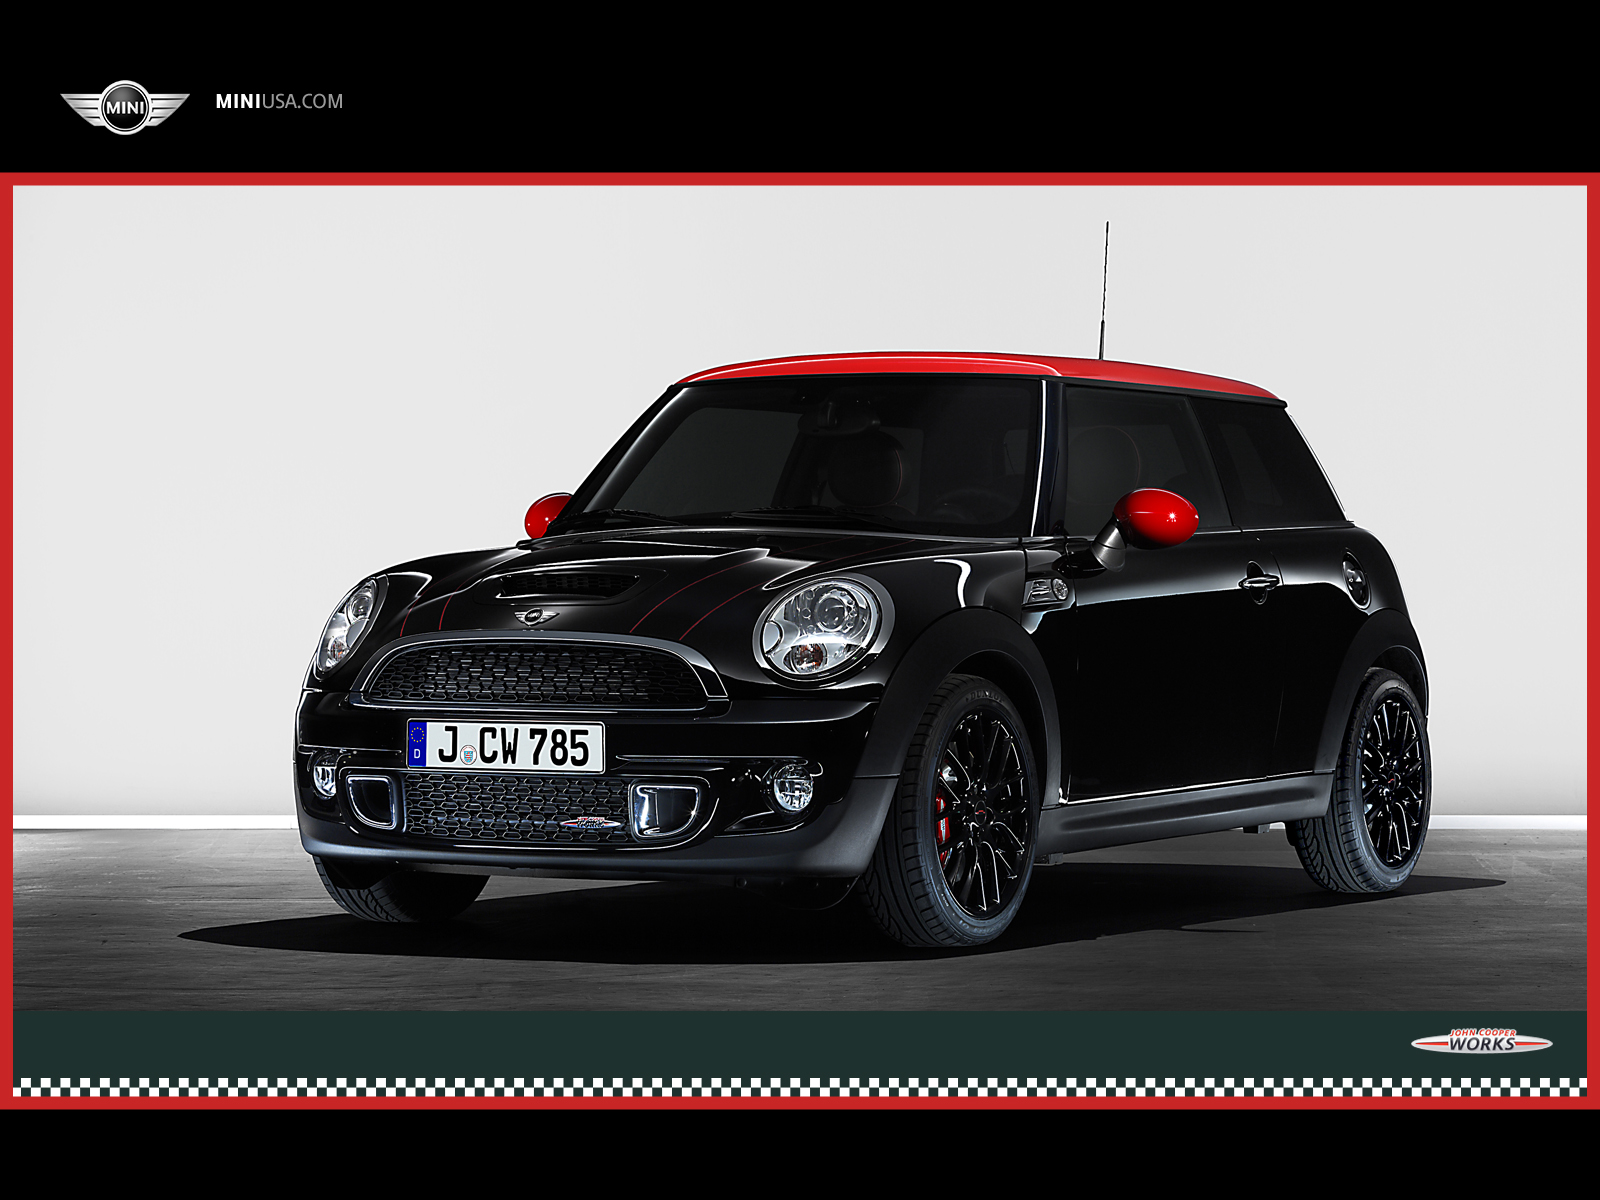 http://1.bp.blogspot.com/-DbM3ZKlhU2A/UI0eQxafMvI/AAAAAAAAGRI/E7eHnx0PQ2M/s1600/BMW-MINI-Hard+Top-JOHN_COOPER_WORKS-exterior-front-side-view-black-red-roof.jpg